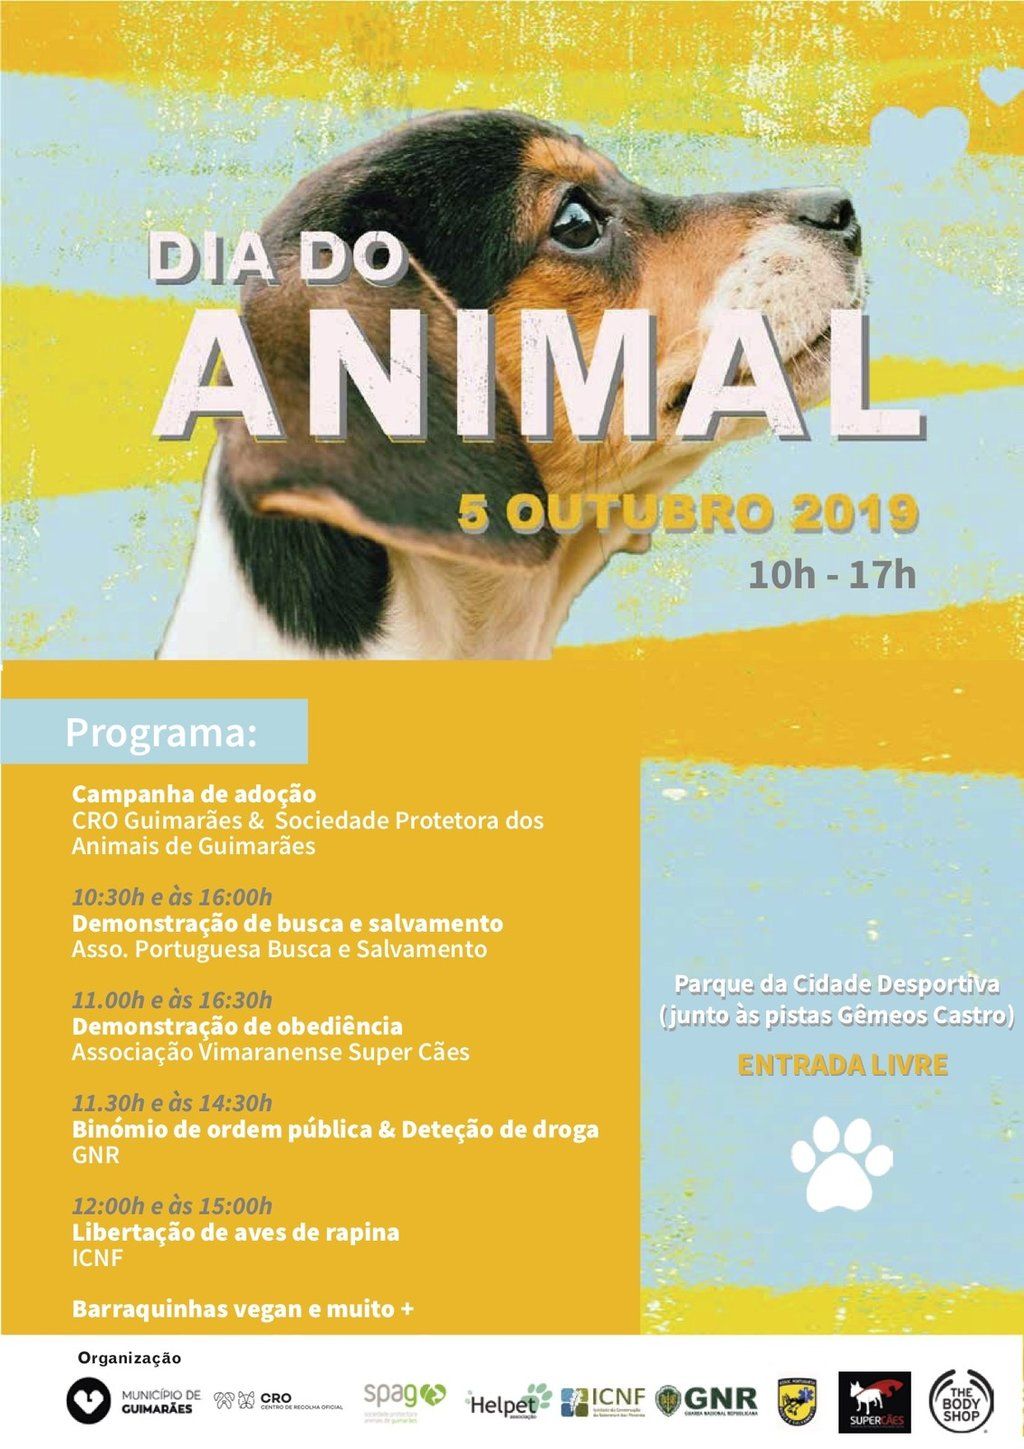 dia_do_animal_ii_1__1_1024_2500